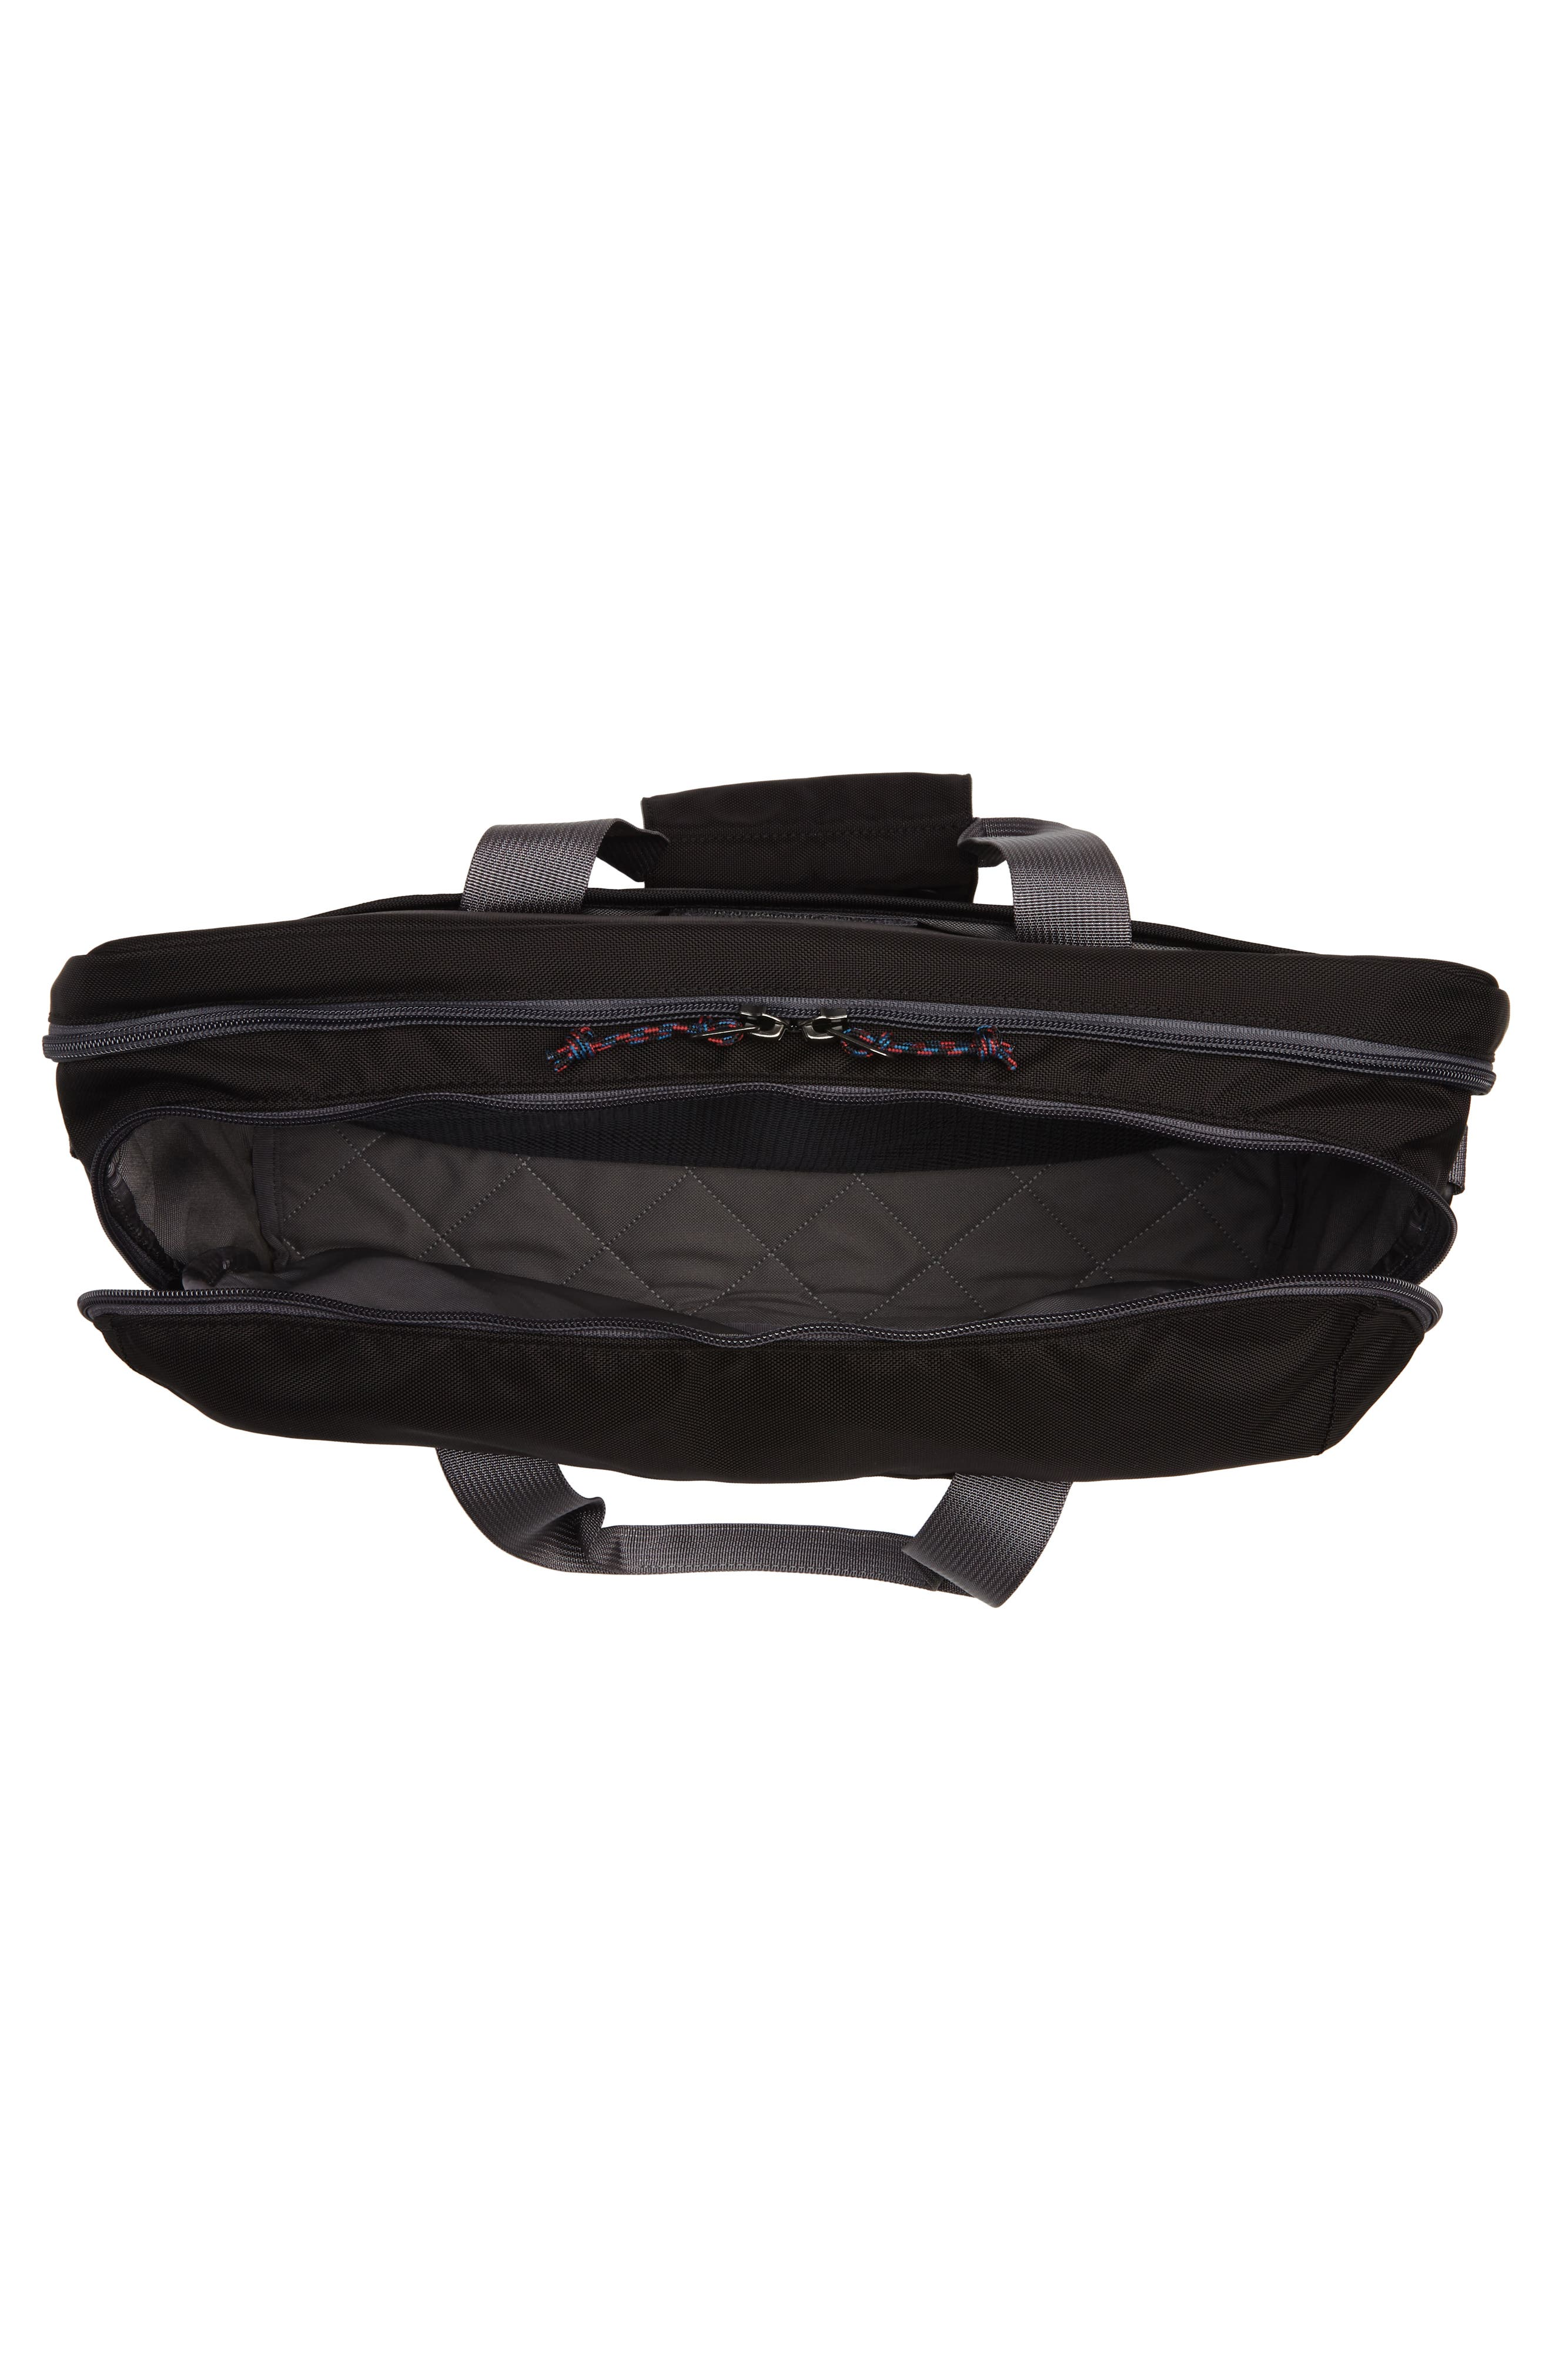 Headway Briefcase,                             Alternate thumbnail 4, color,                             001